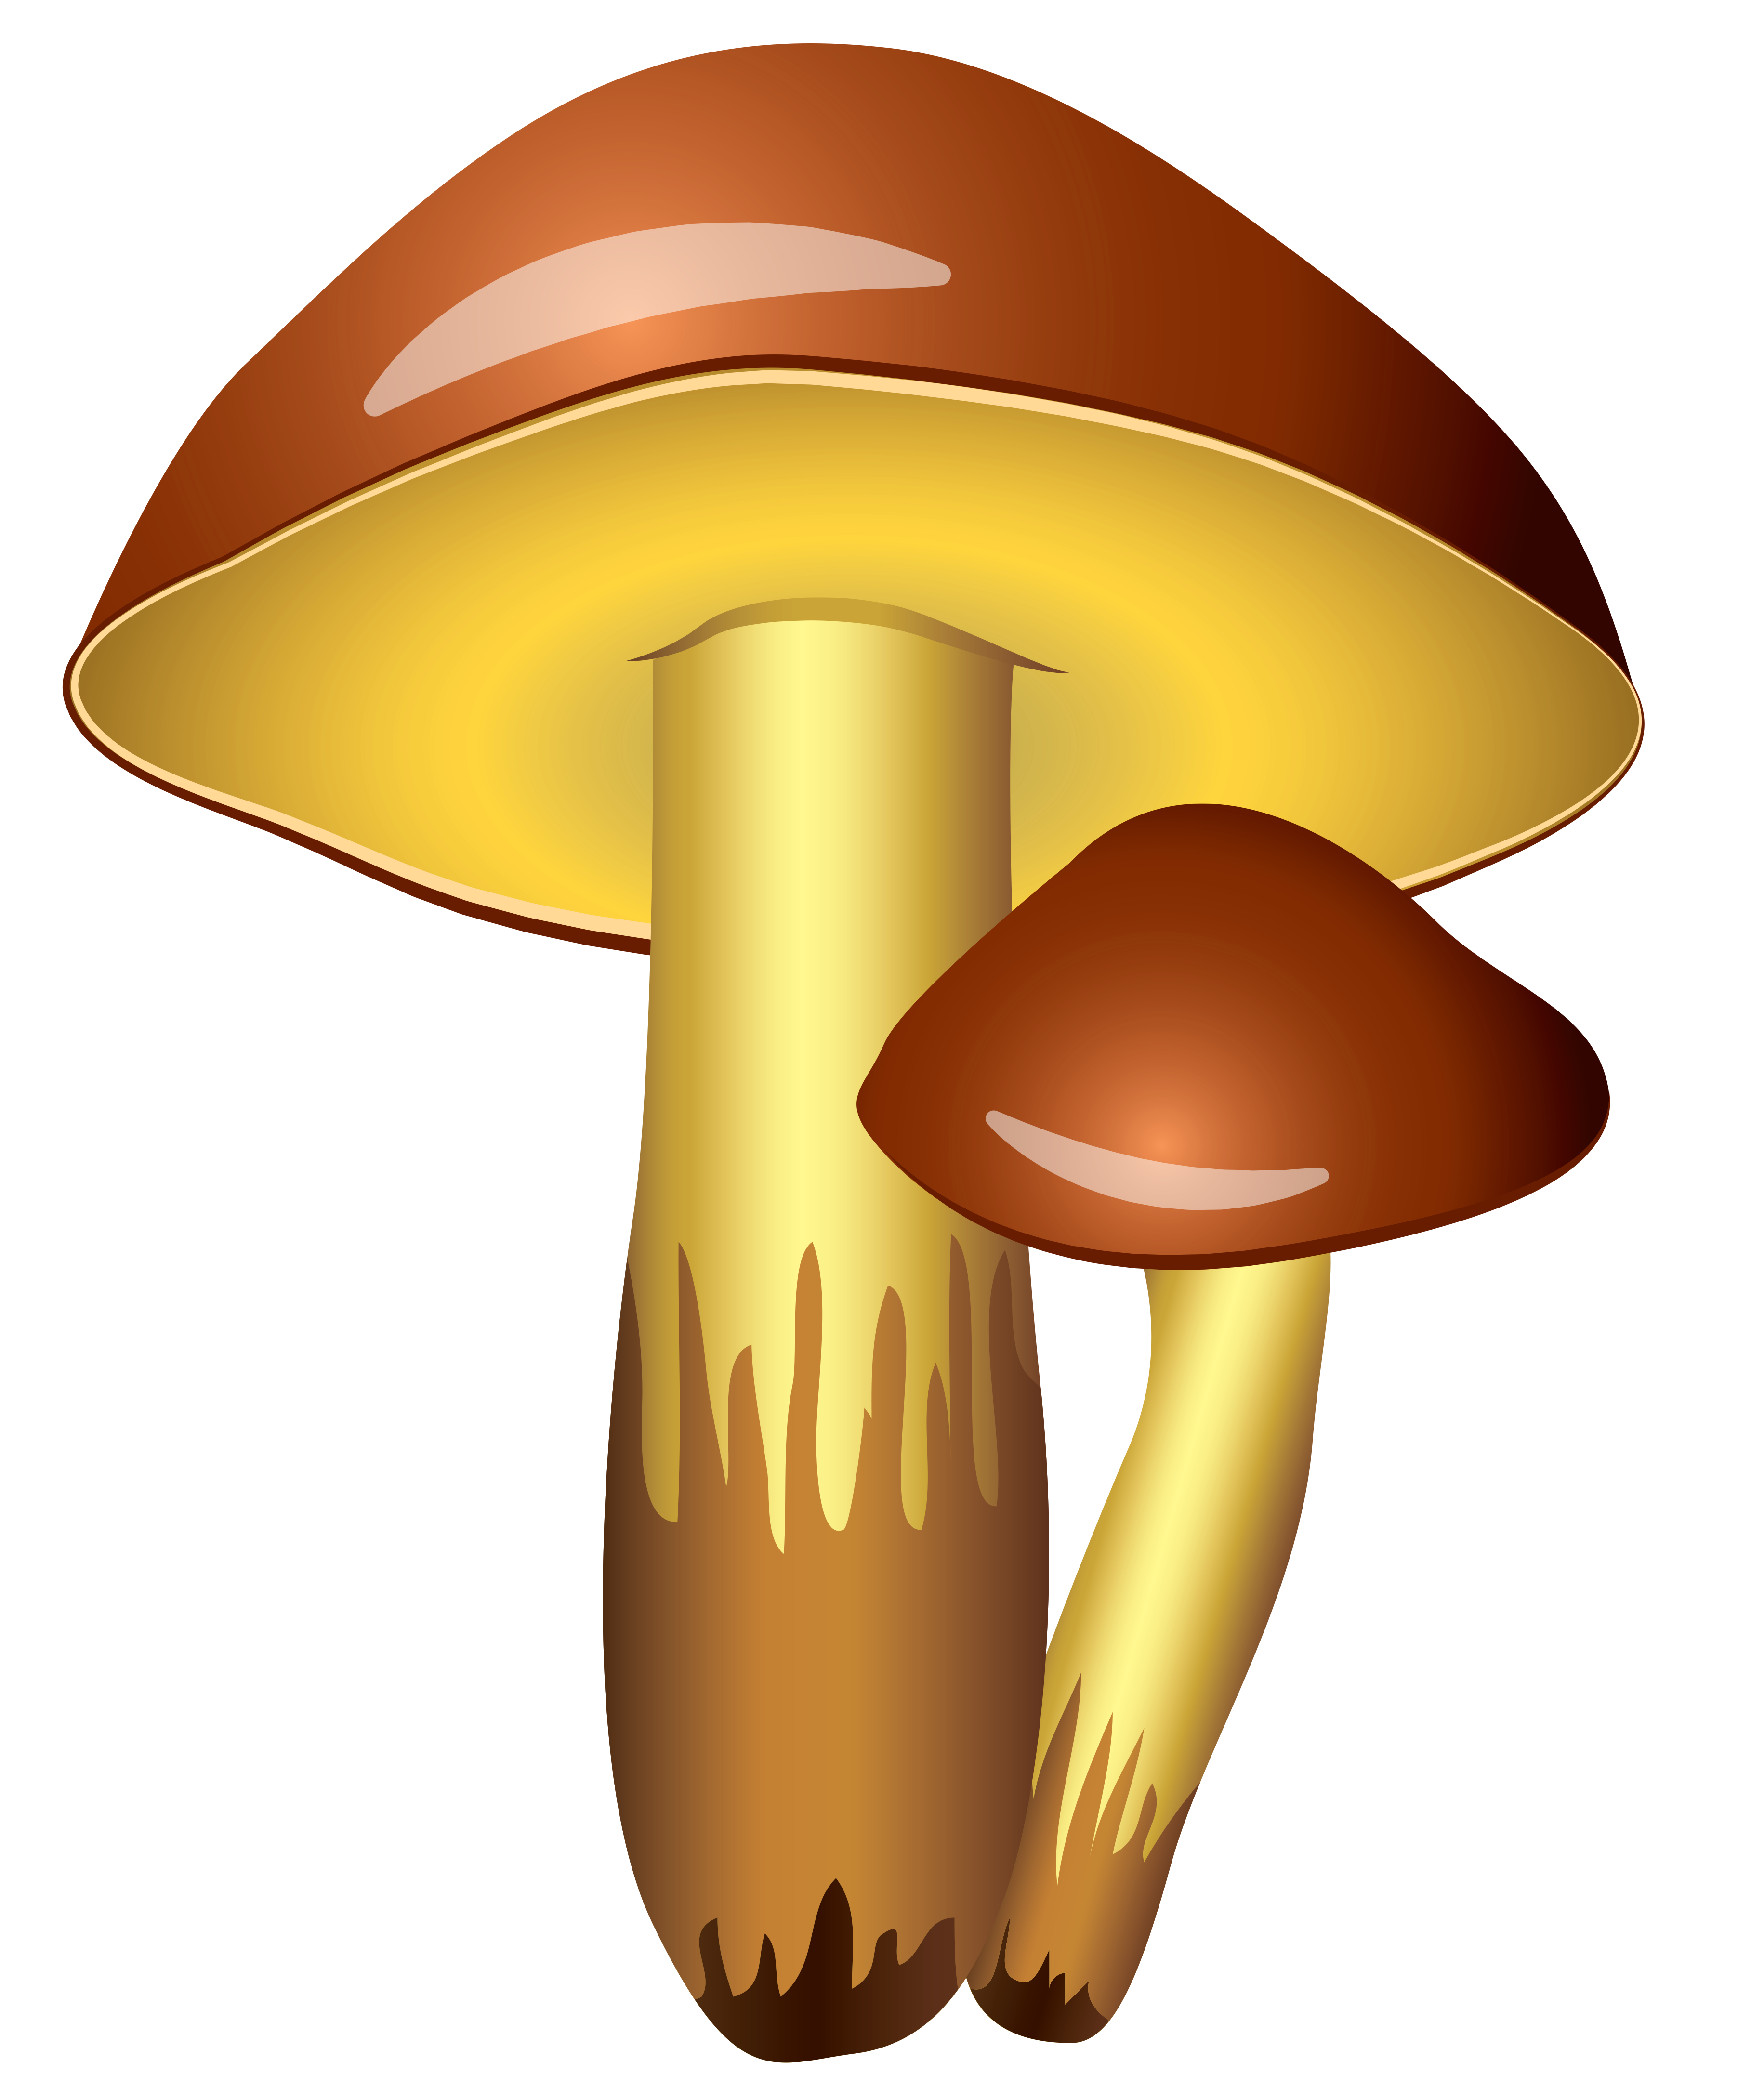 3635x4360 Mushrooms Transparent Png Clipart Pictureu200b Gallery Yopriceville